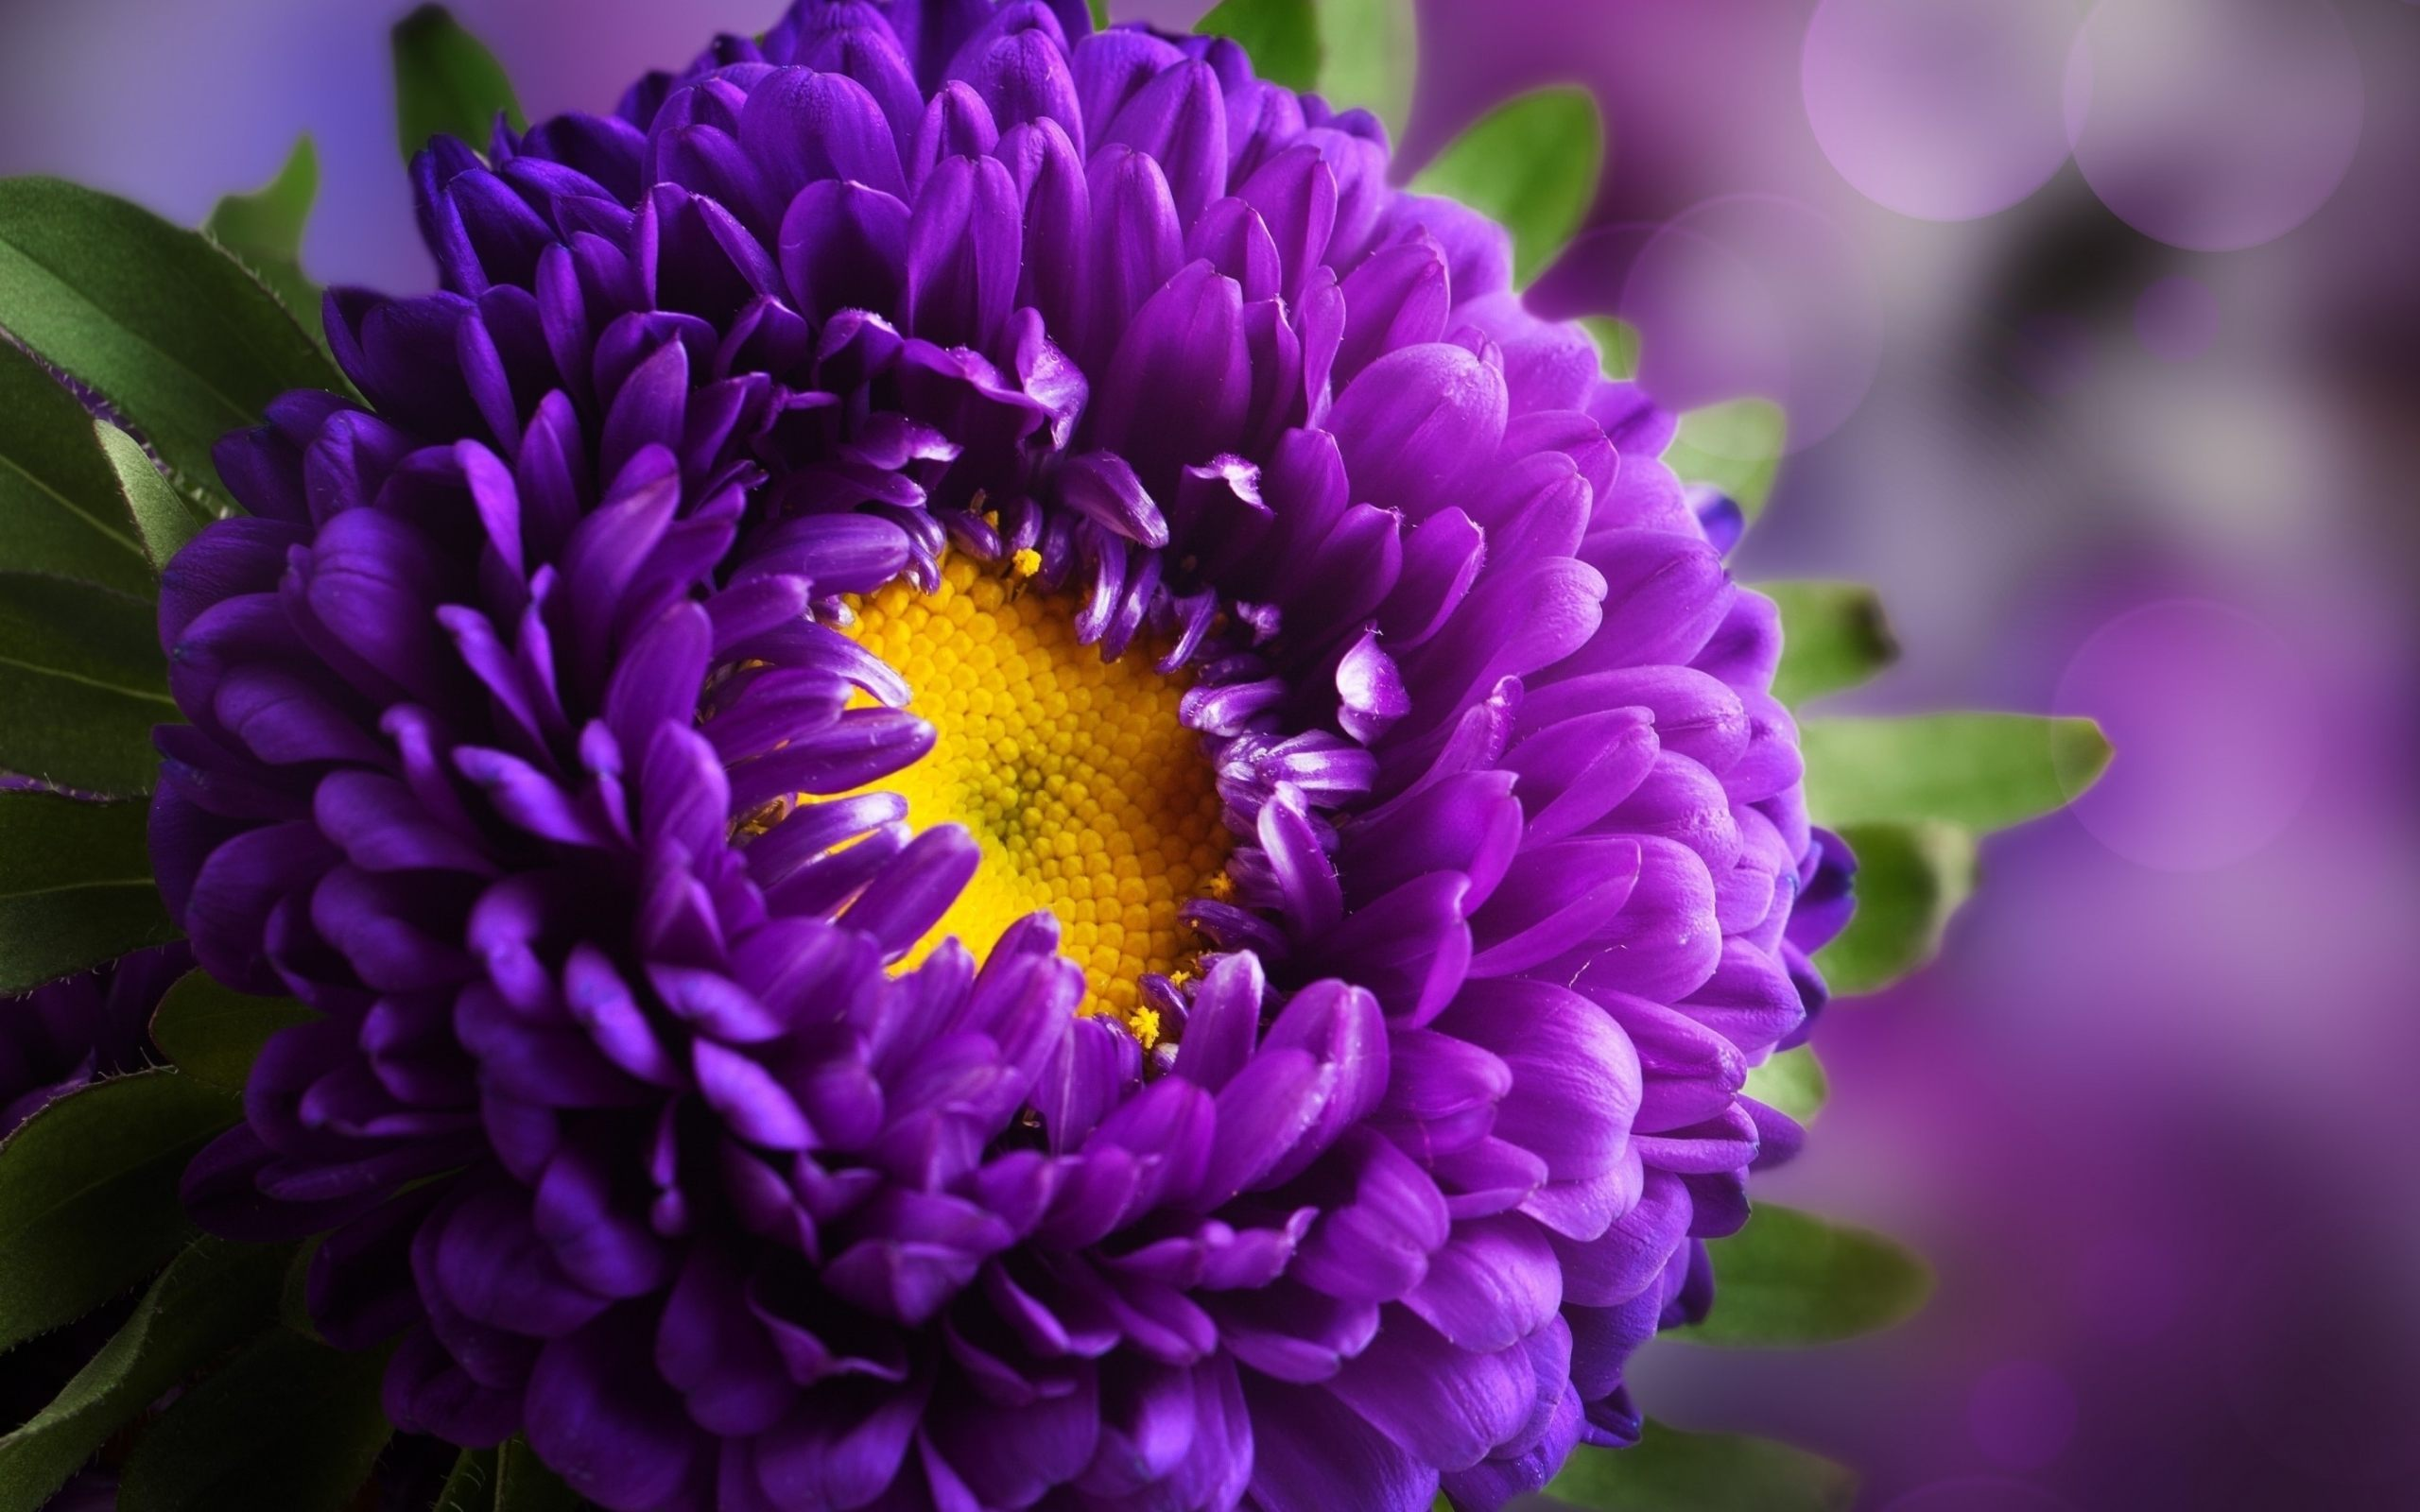 Purple Flowers Wallpapers High Quality | Download Free